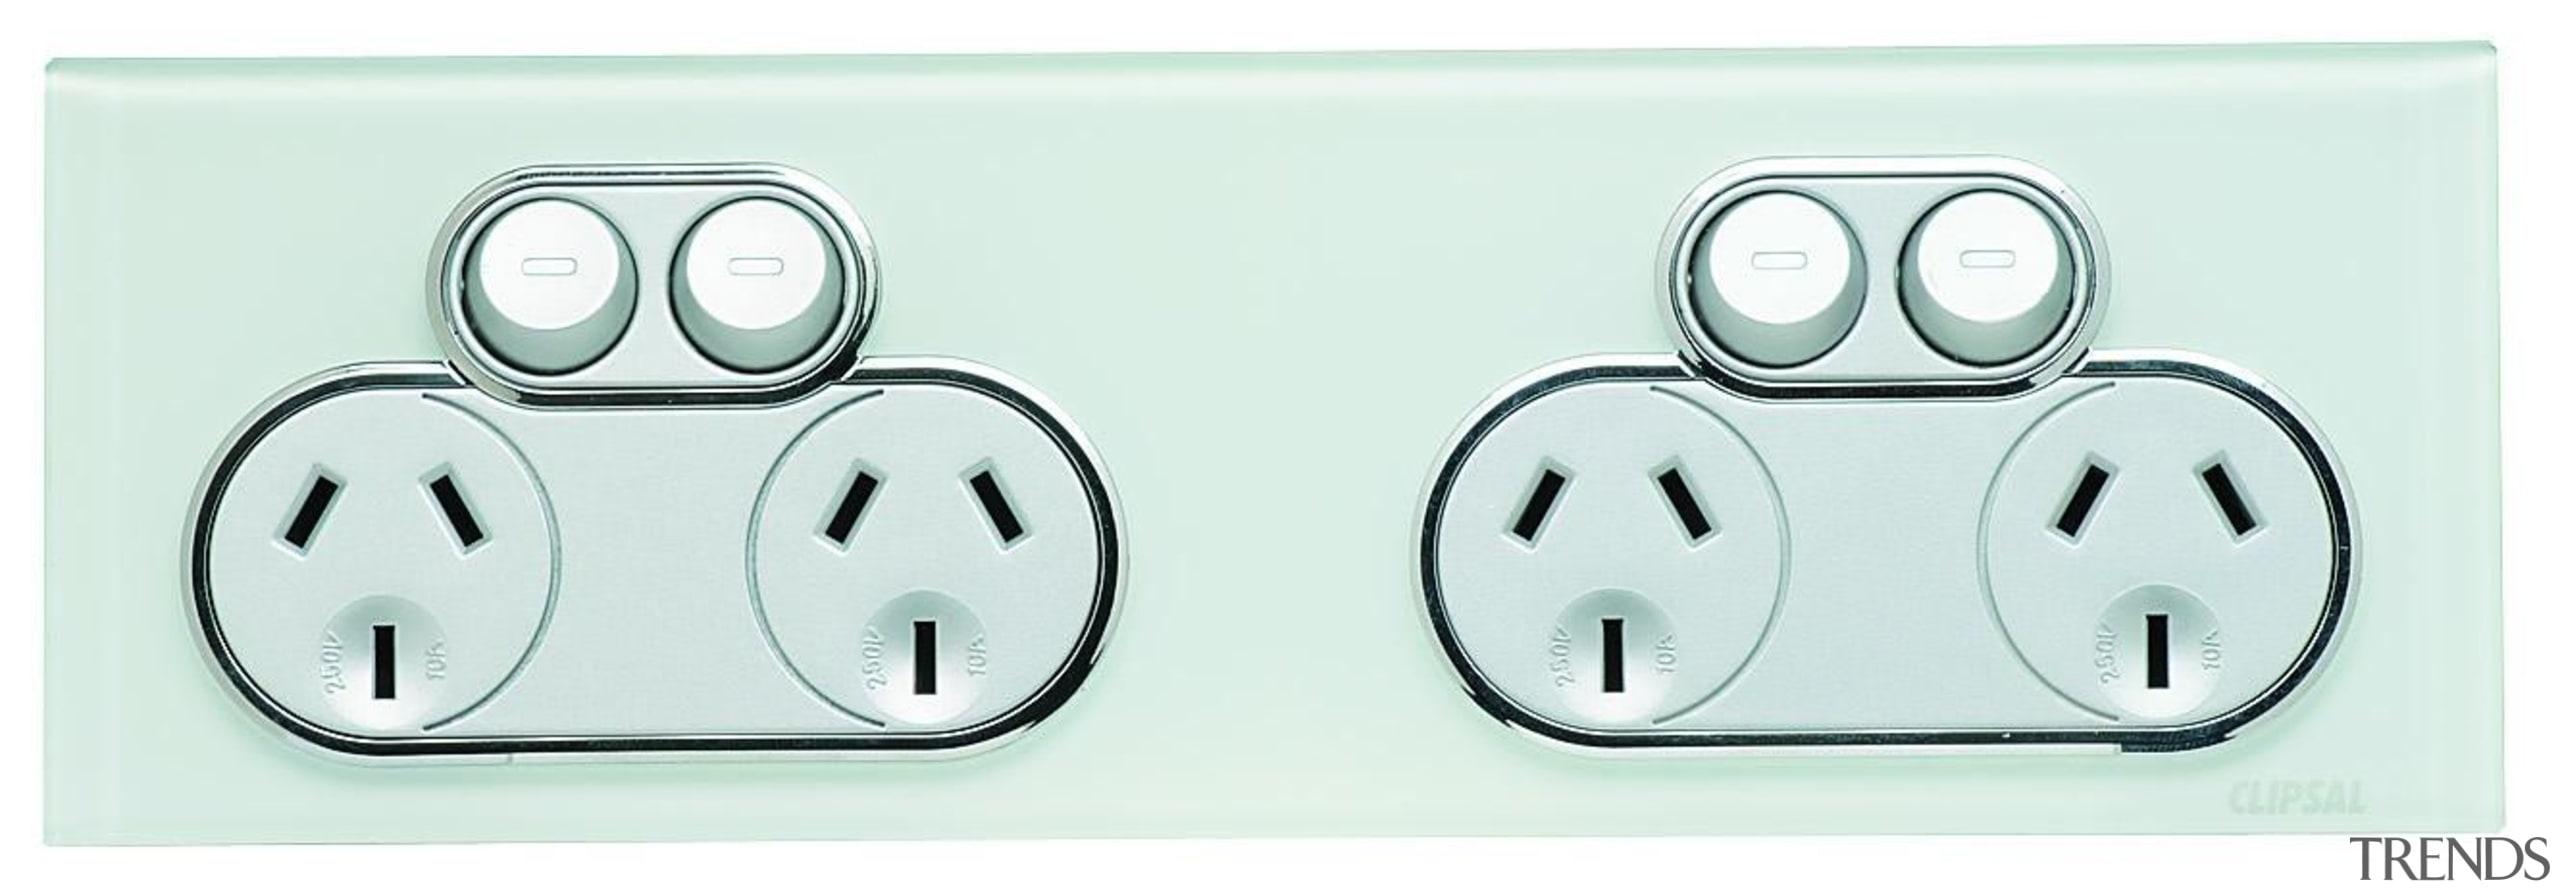 Saturn 250V quad socket Ocean mist - 4025H2-OM product, technology, white